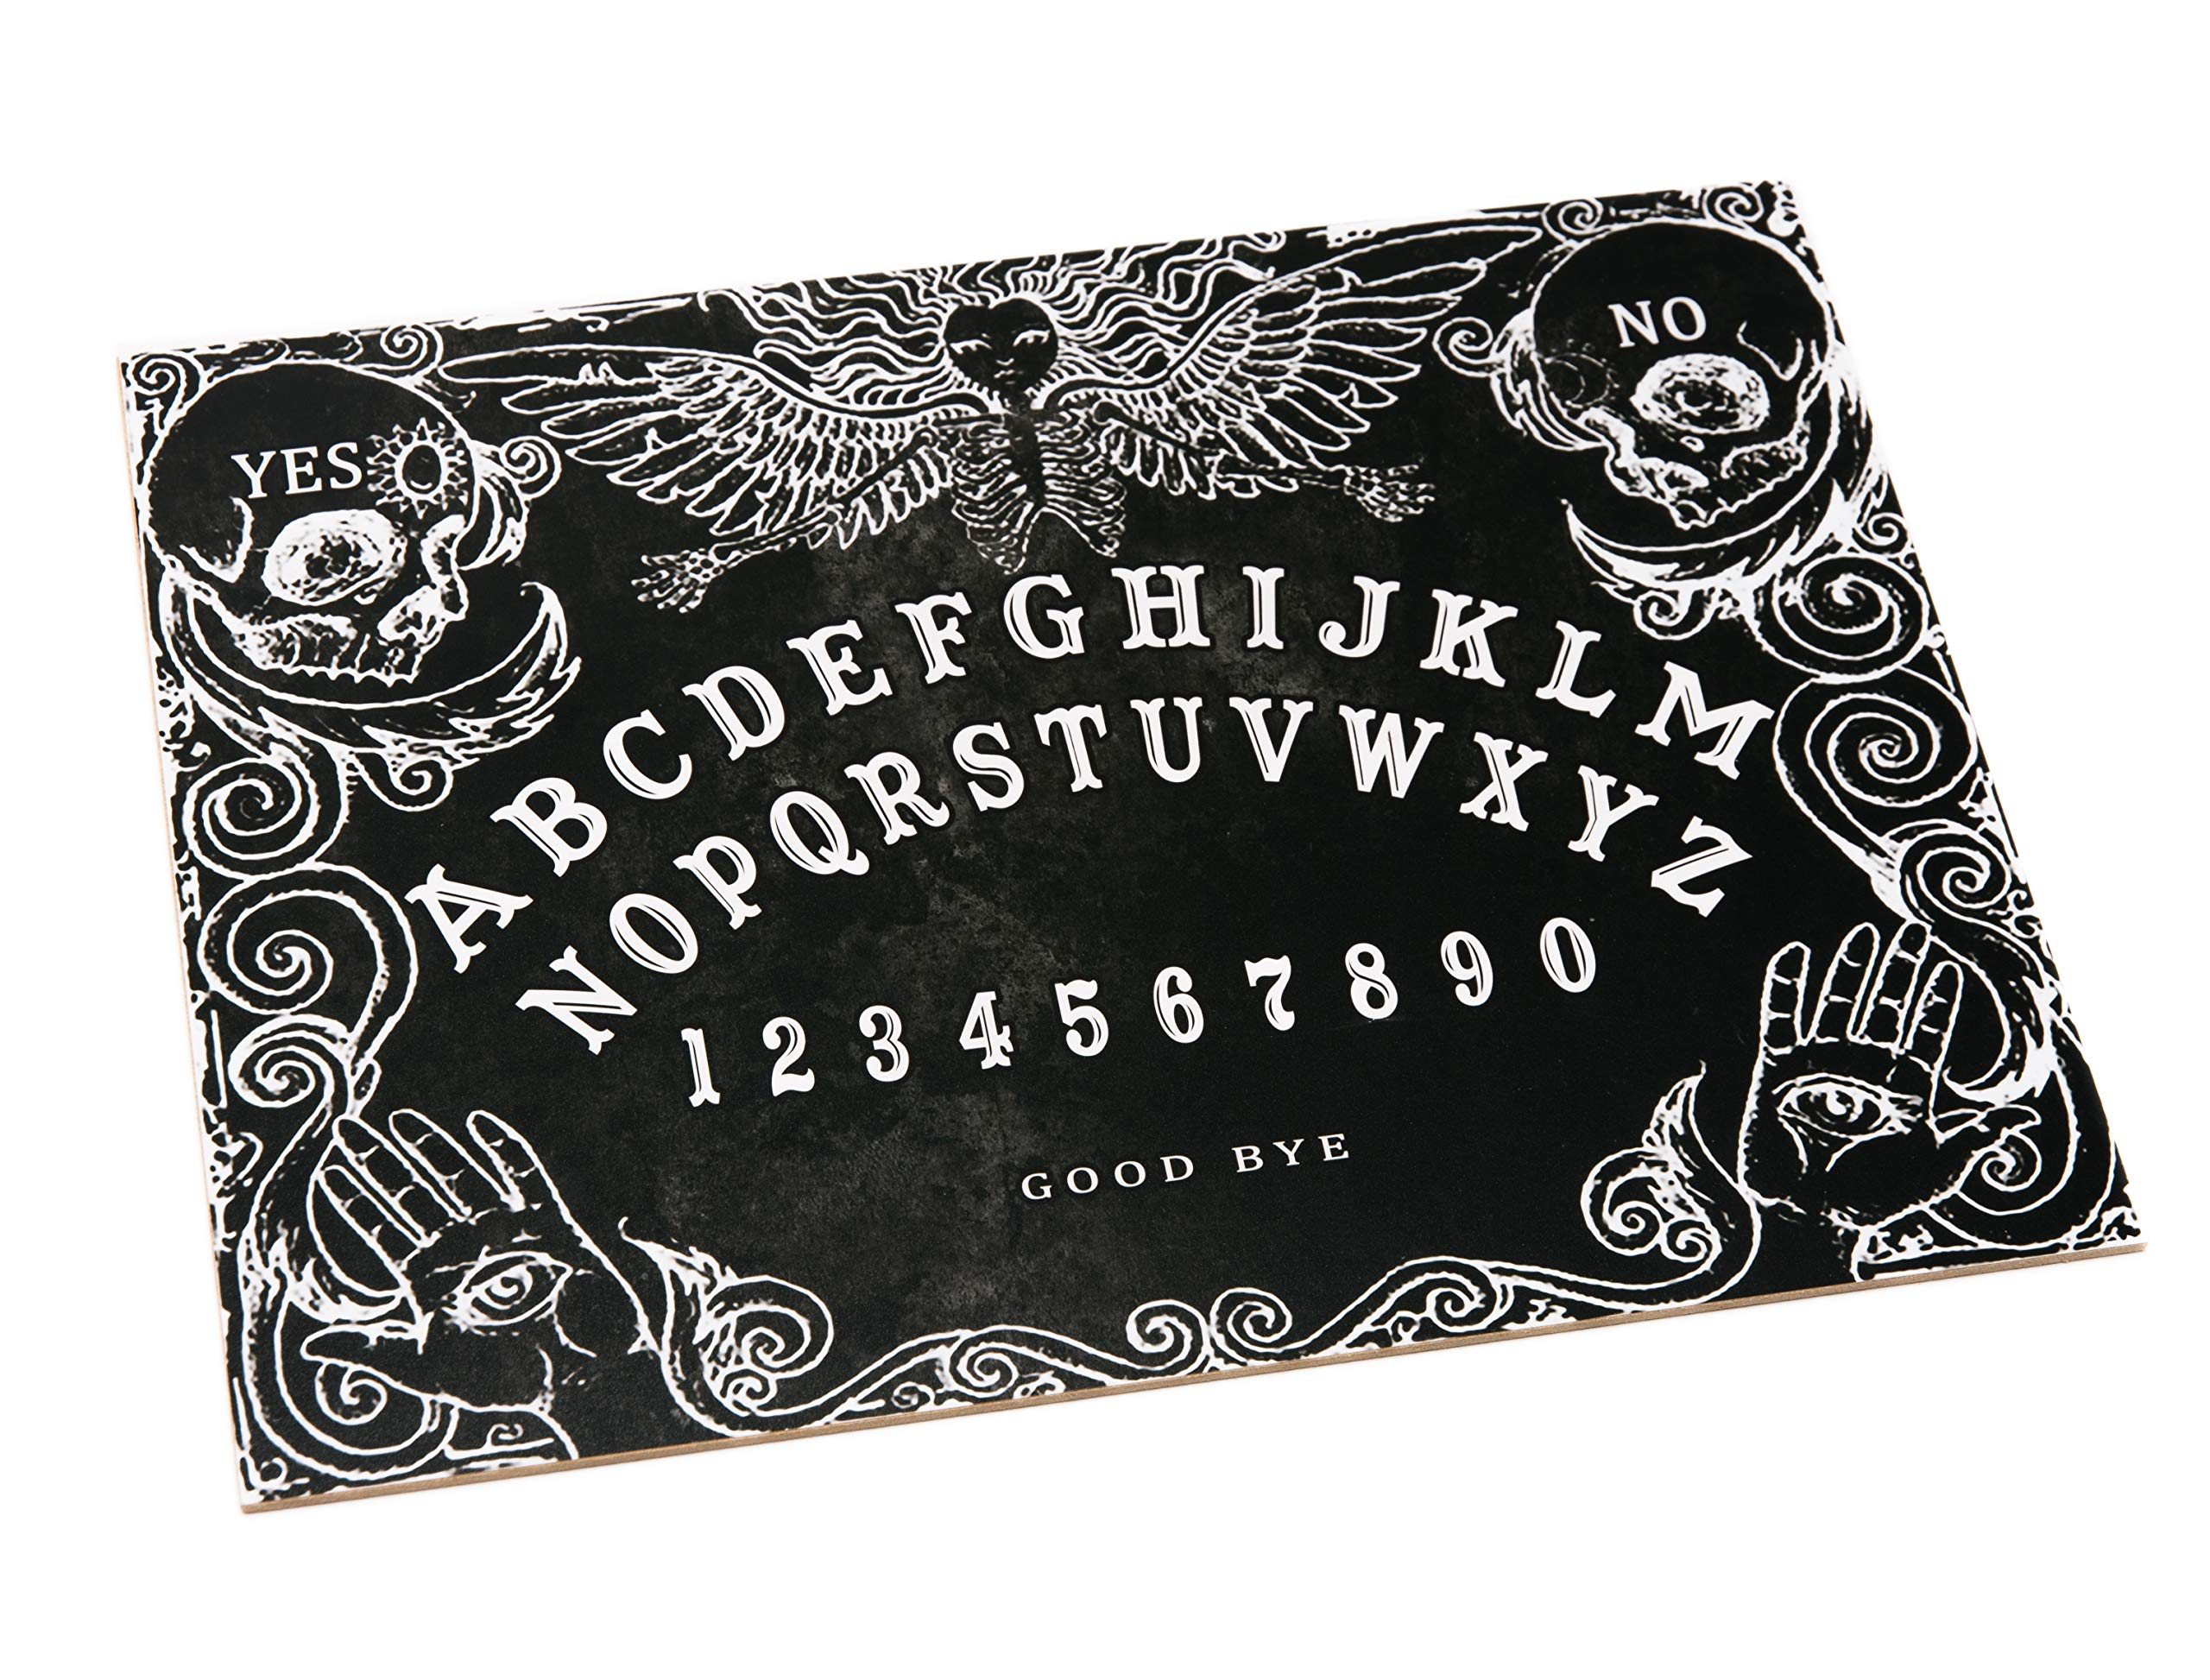 WICCSTAR Black Wooden Ouija Spirit Board game with Planchette and detailed instruction